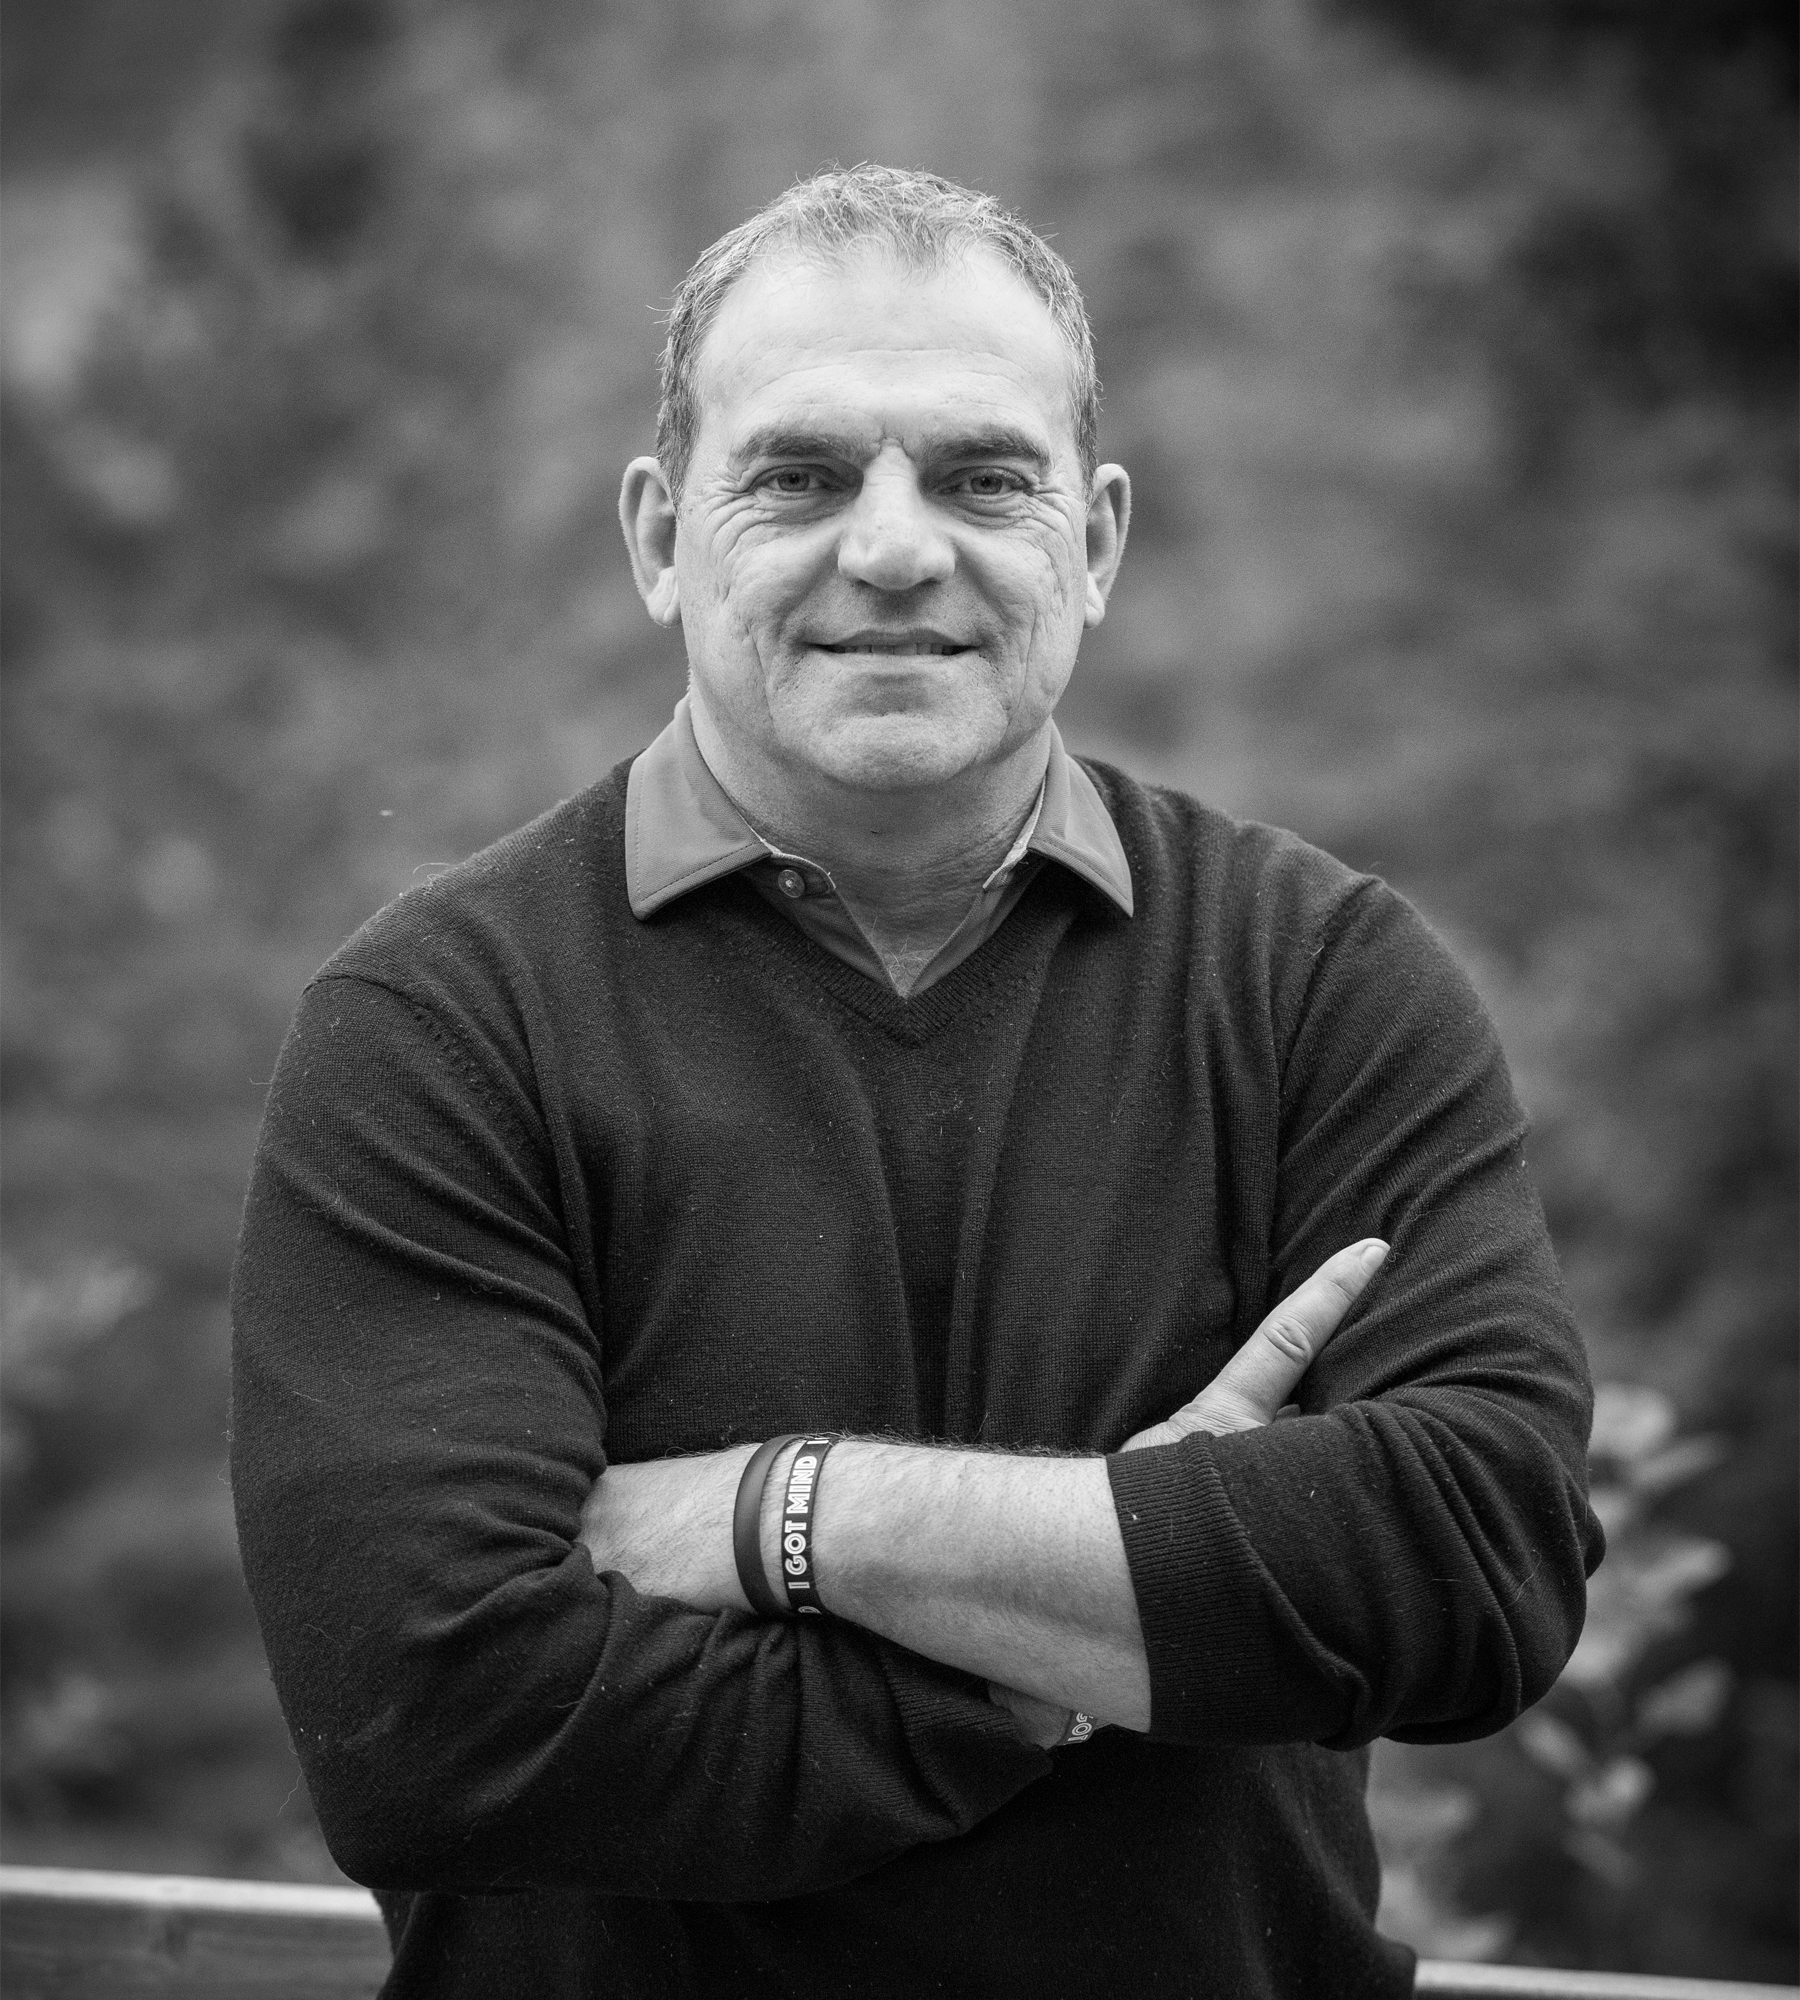 Bob Wilkie on Life Beyond the Game podcast with Joe Hawley